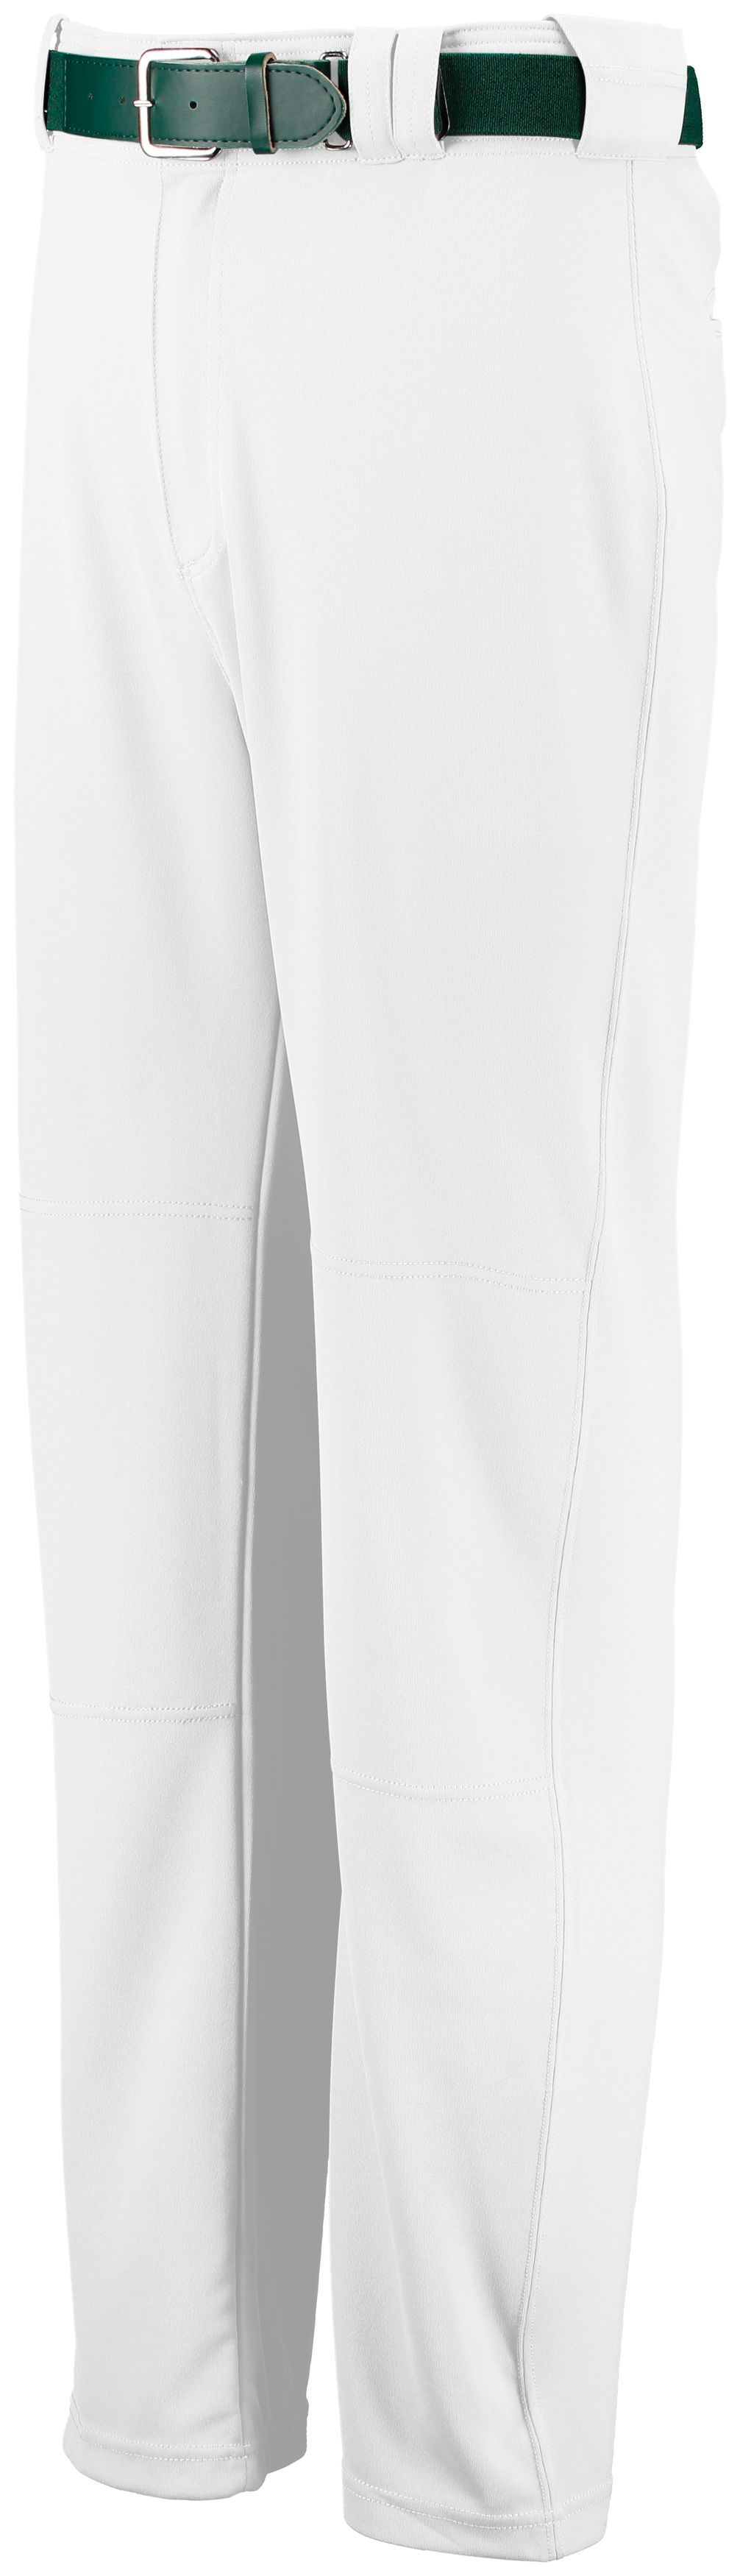 Boot Cut Game Pant - White